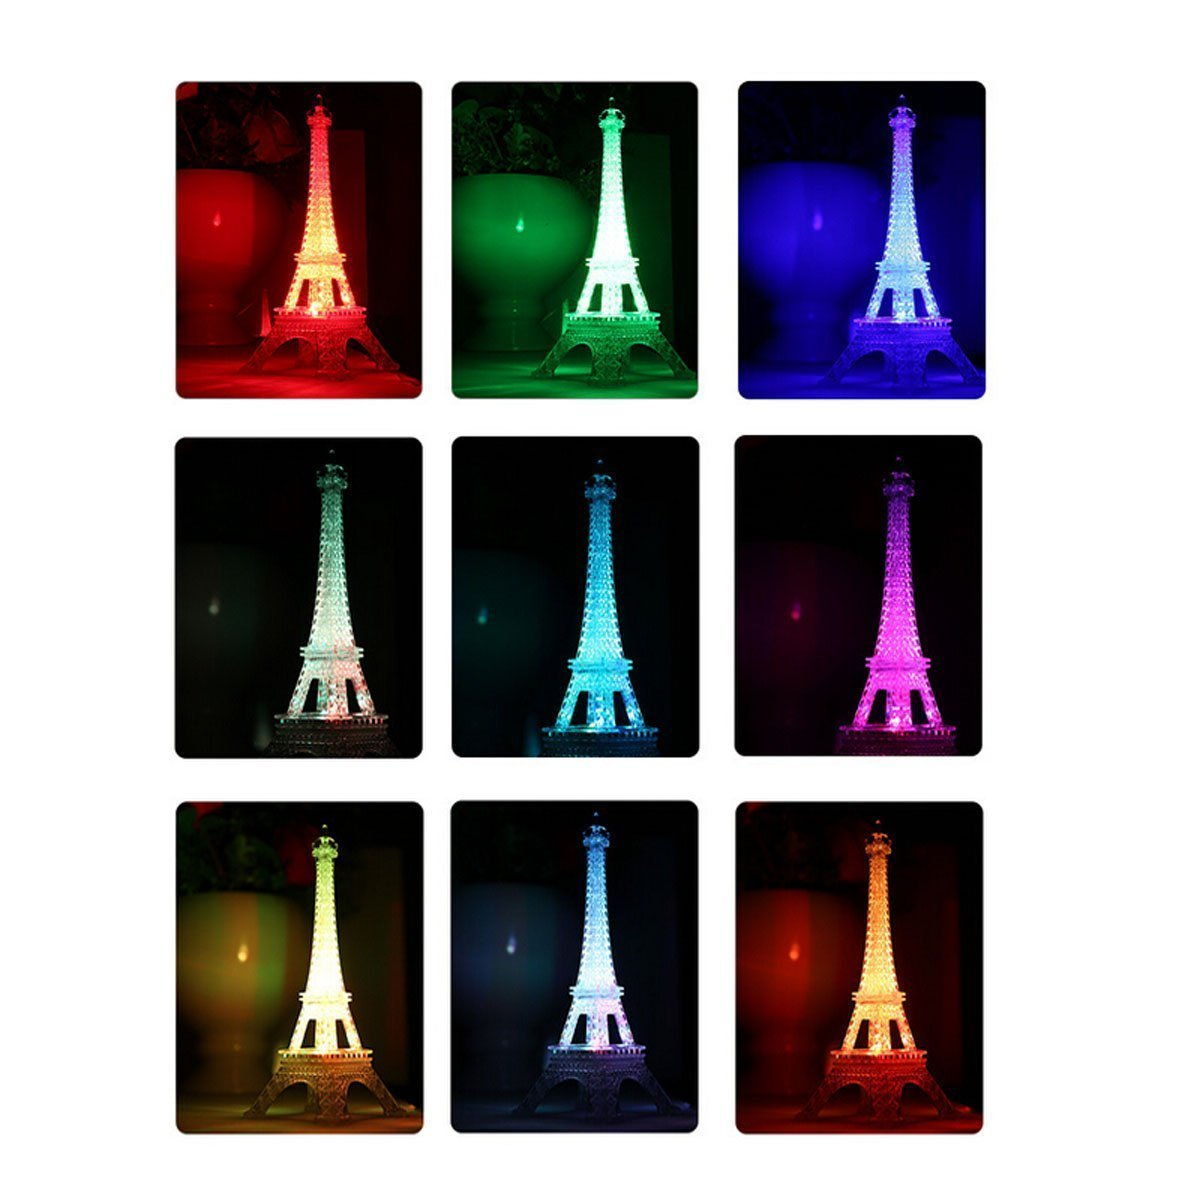 9 Inch Light Up Acrylic LED Eiffel Tower Souvenir w/ Build in Multicolor LED Lights